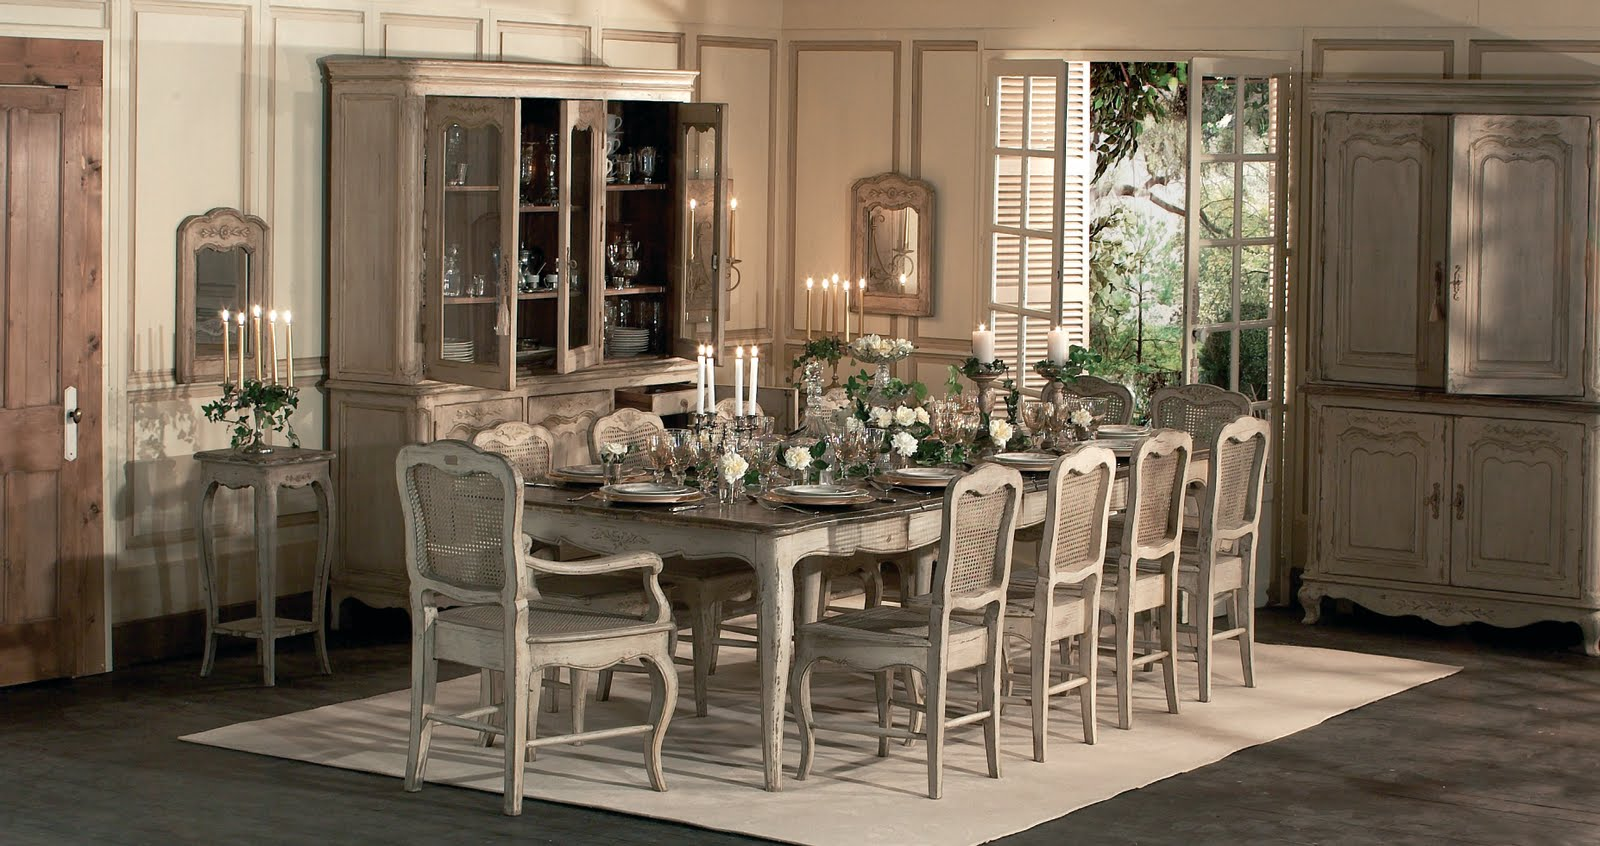 Modern French Country Dining Room | New Style for 2016-2017